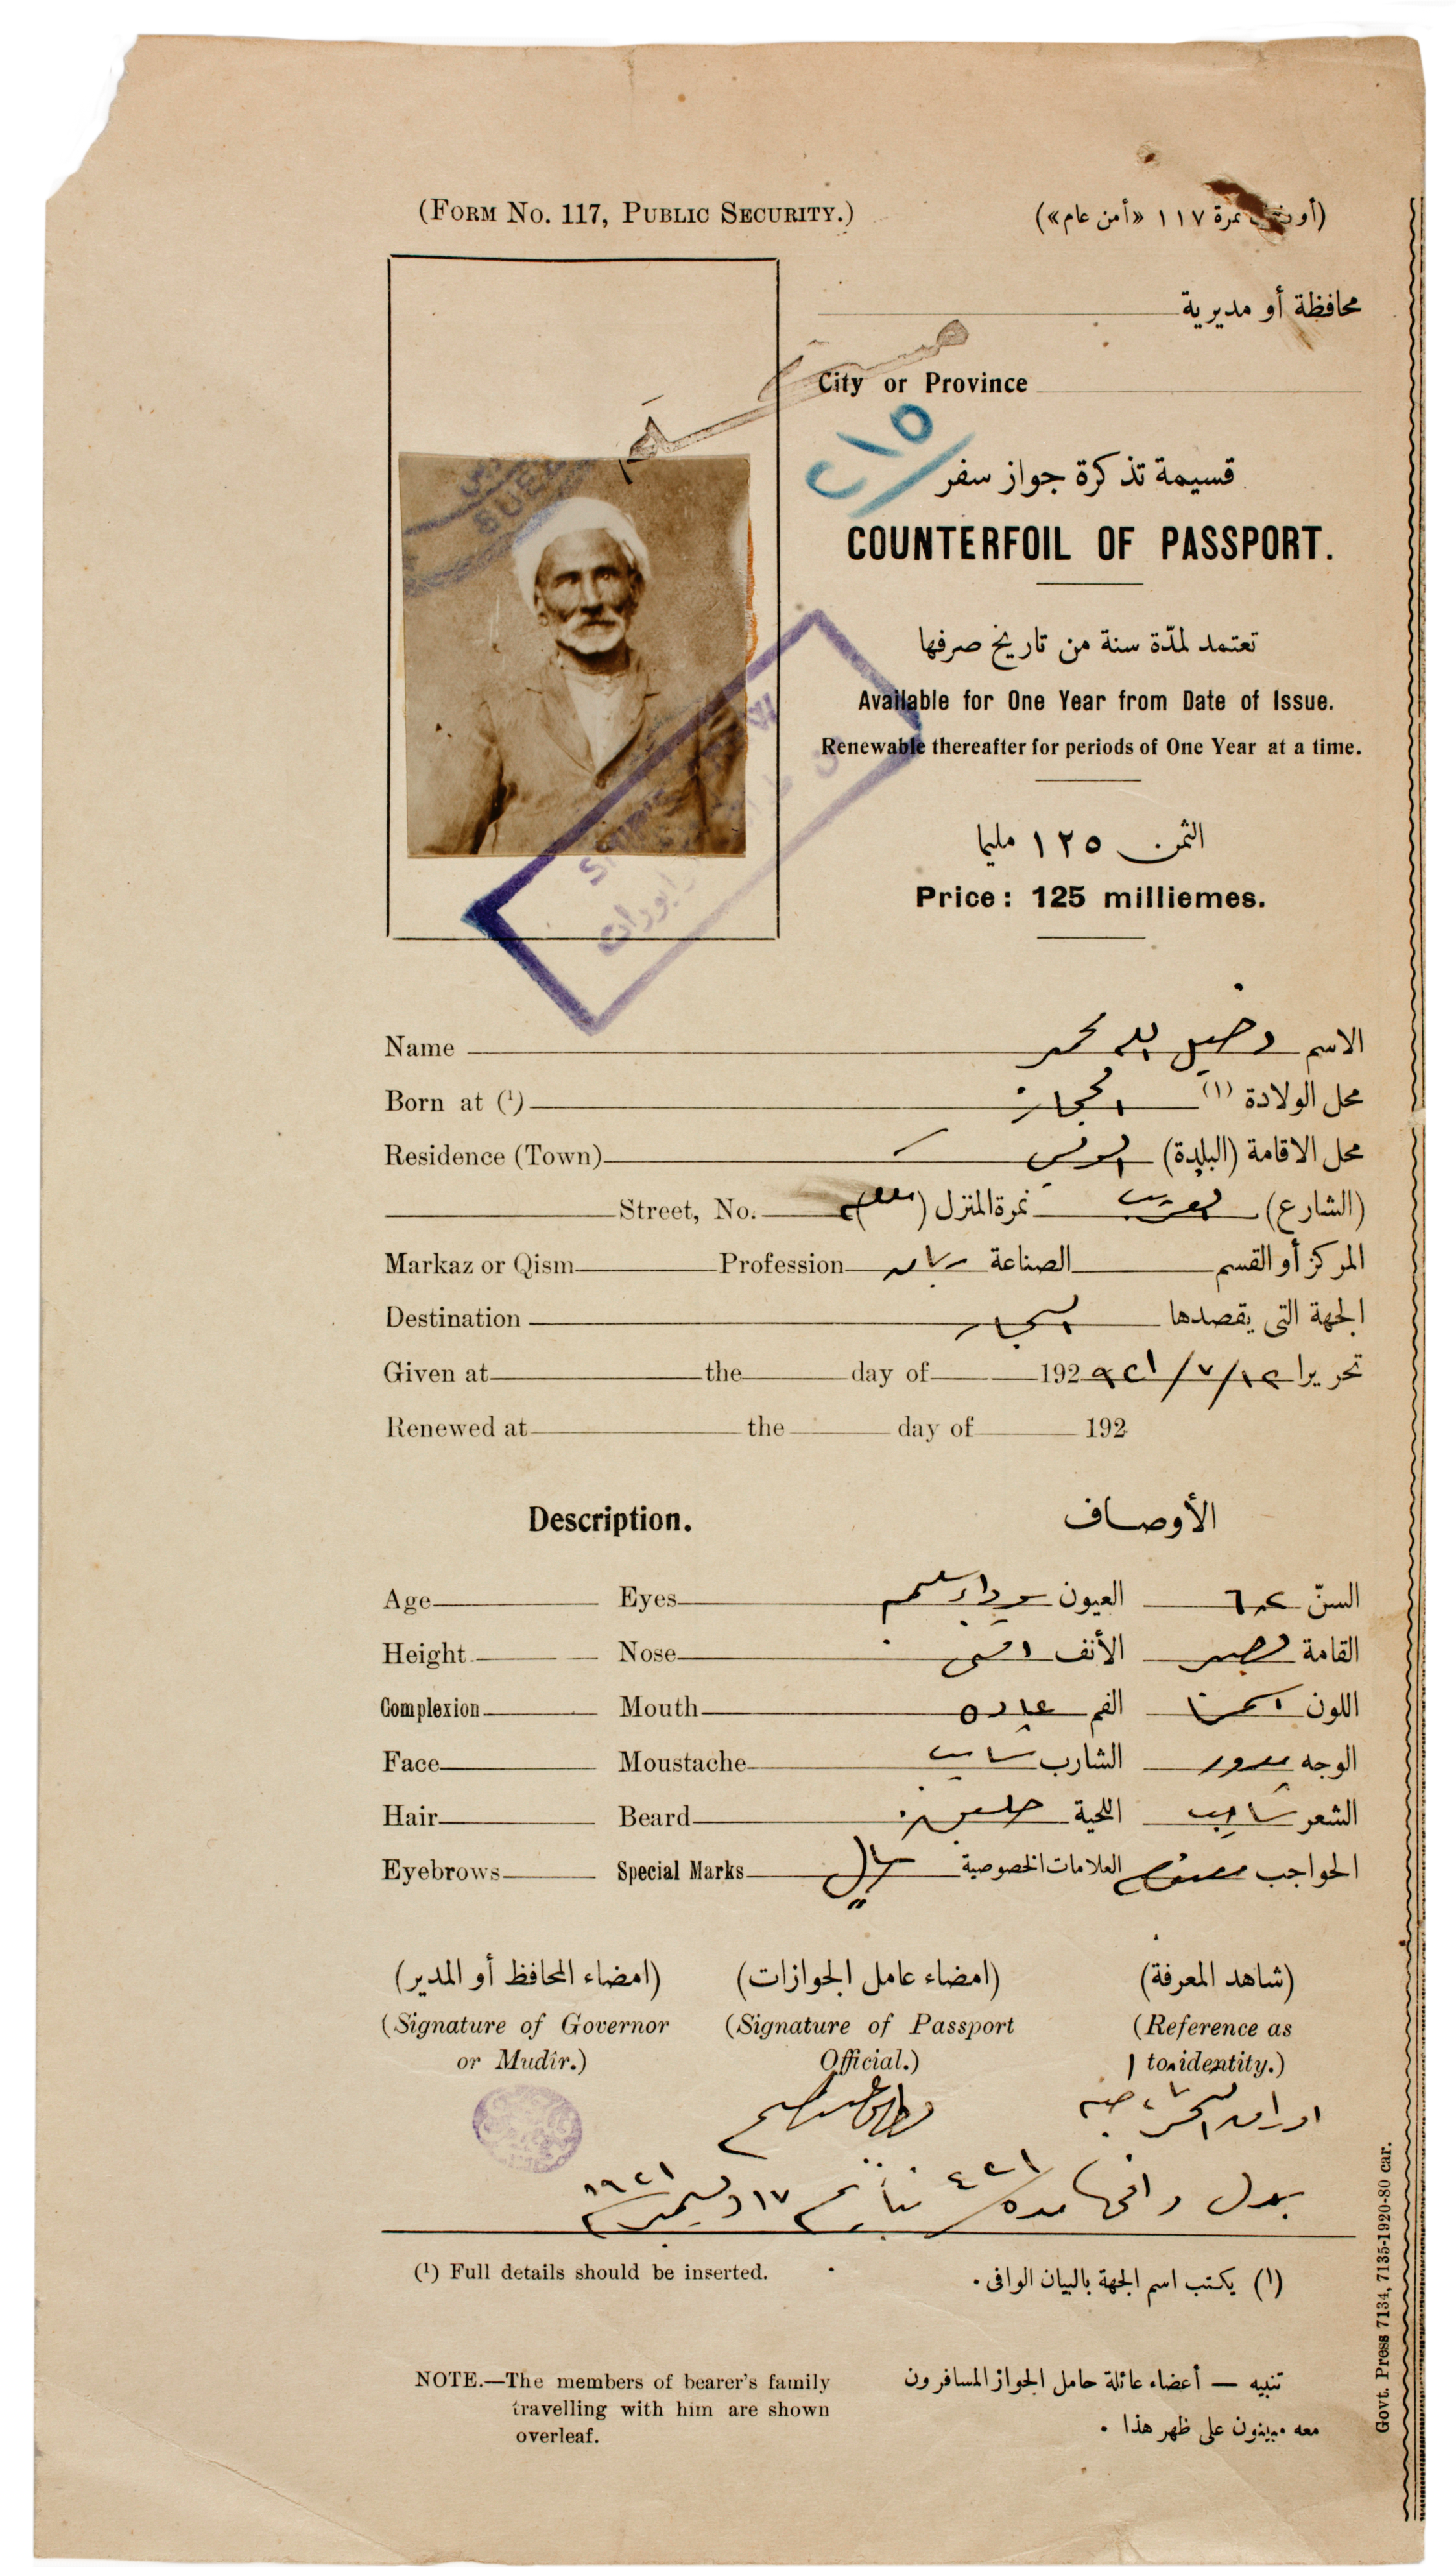 Counterfoil of Passport issued to a ship's captain travelling to the Hijaz